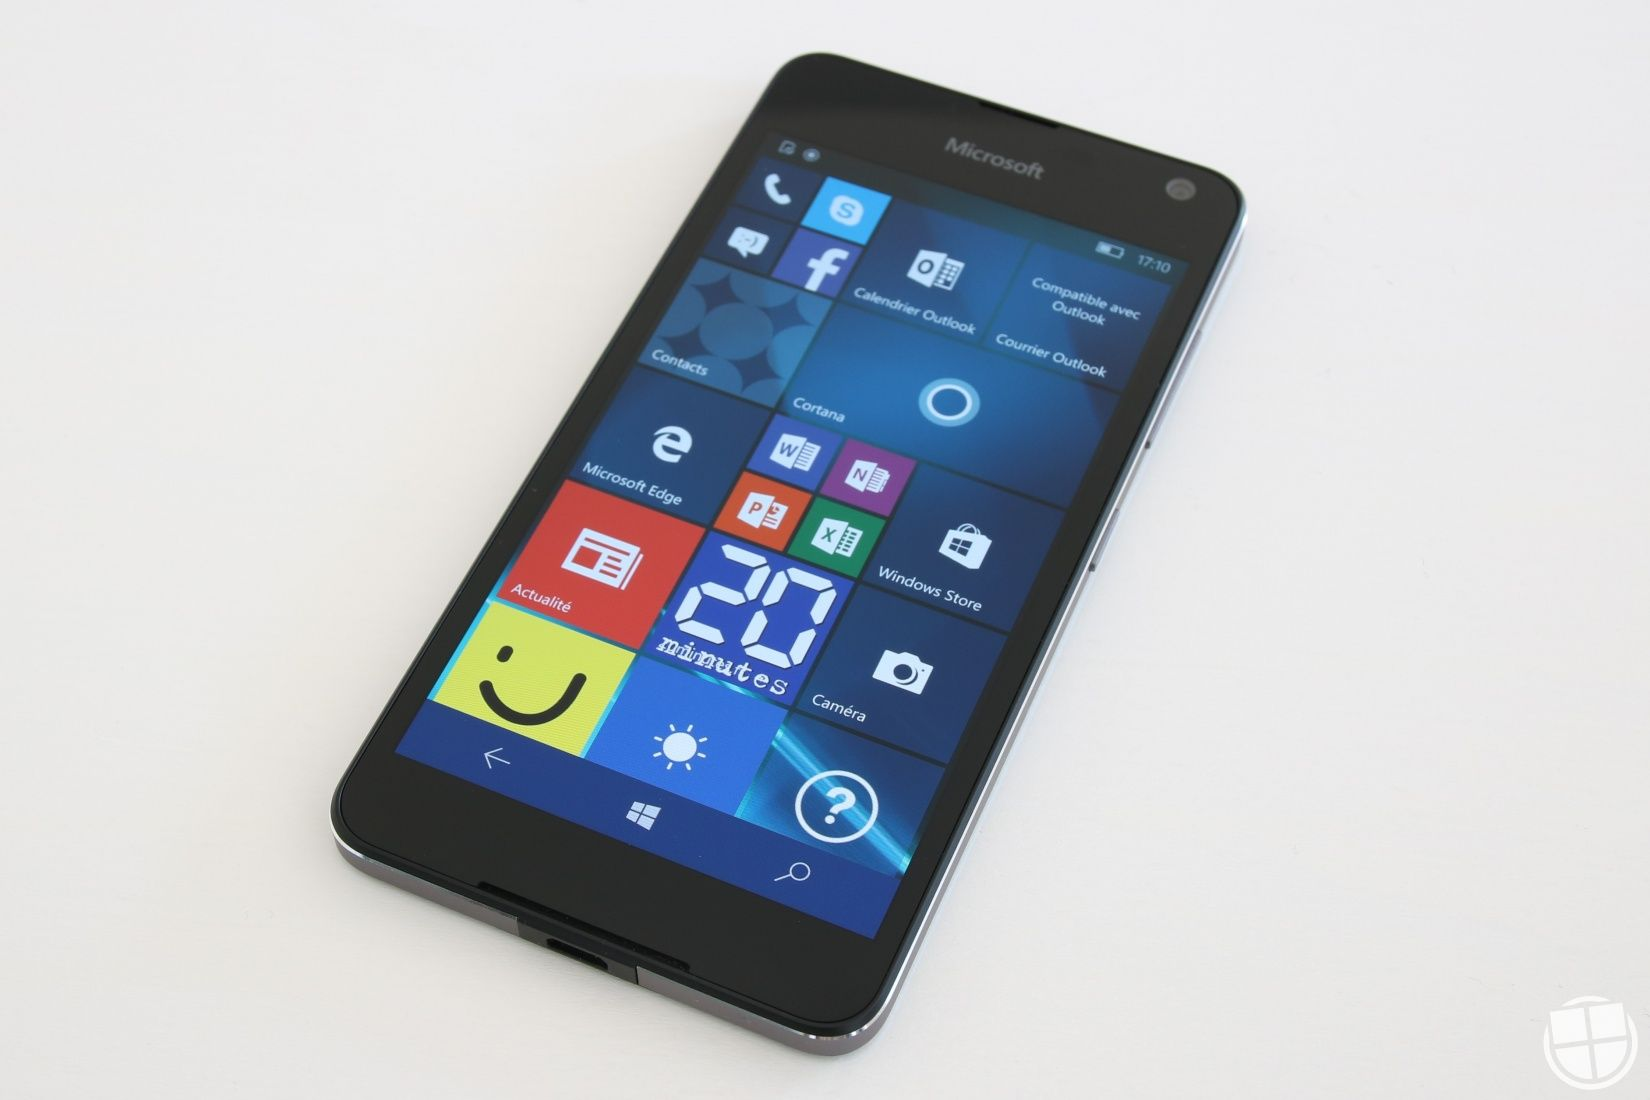 Microsoft Windows Phone Lumia